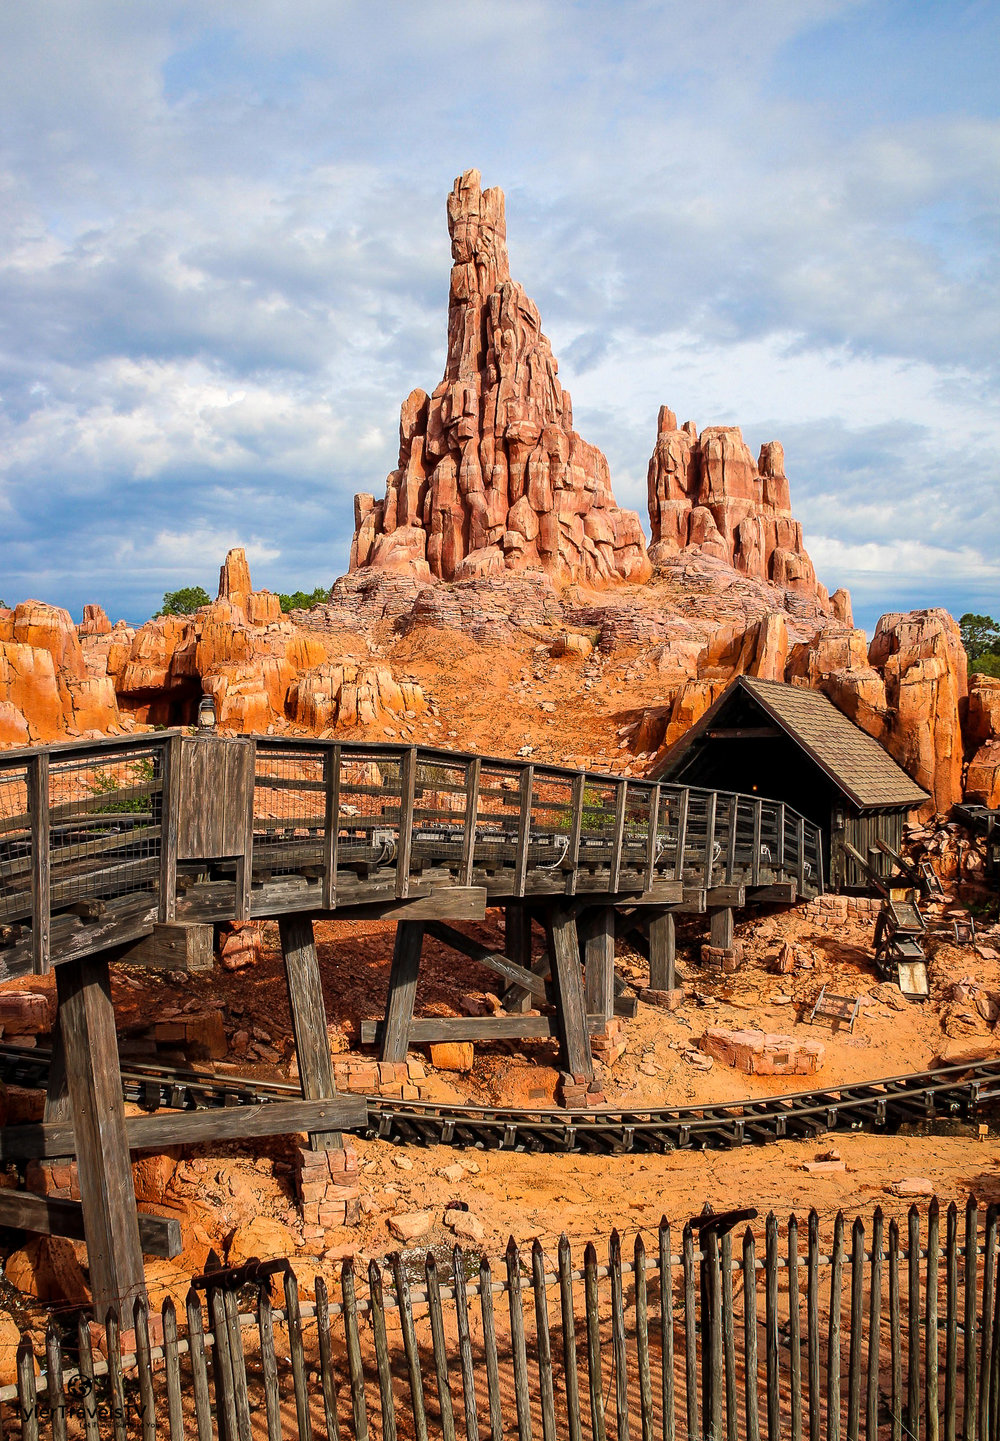 The third ride that we LOVE and will wait in a queue line for every trip is Big Thunder Mountain Railroad.